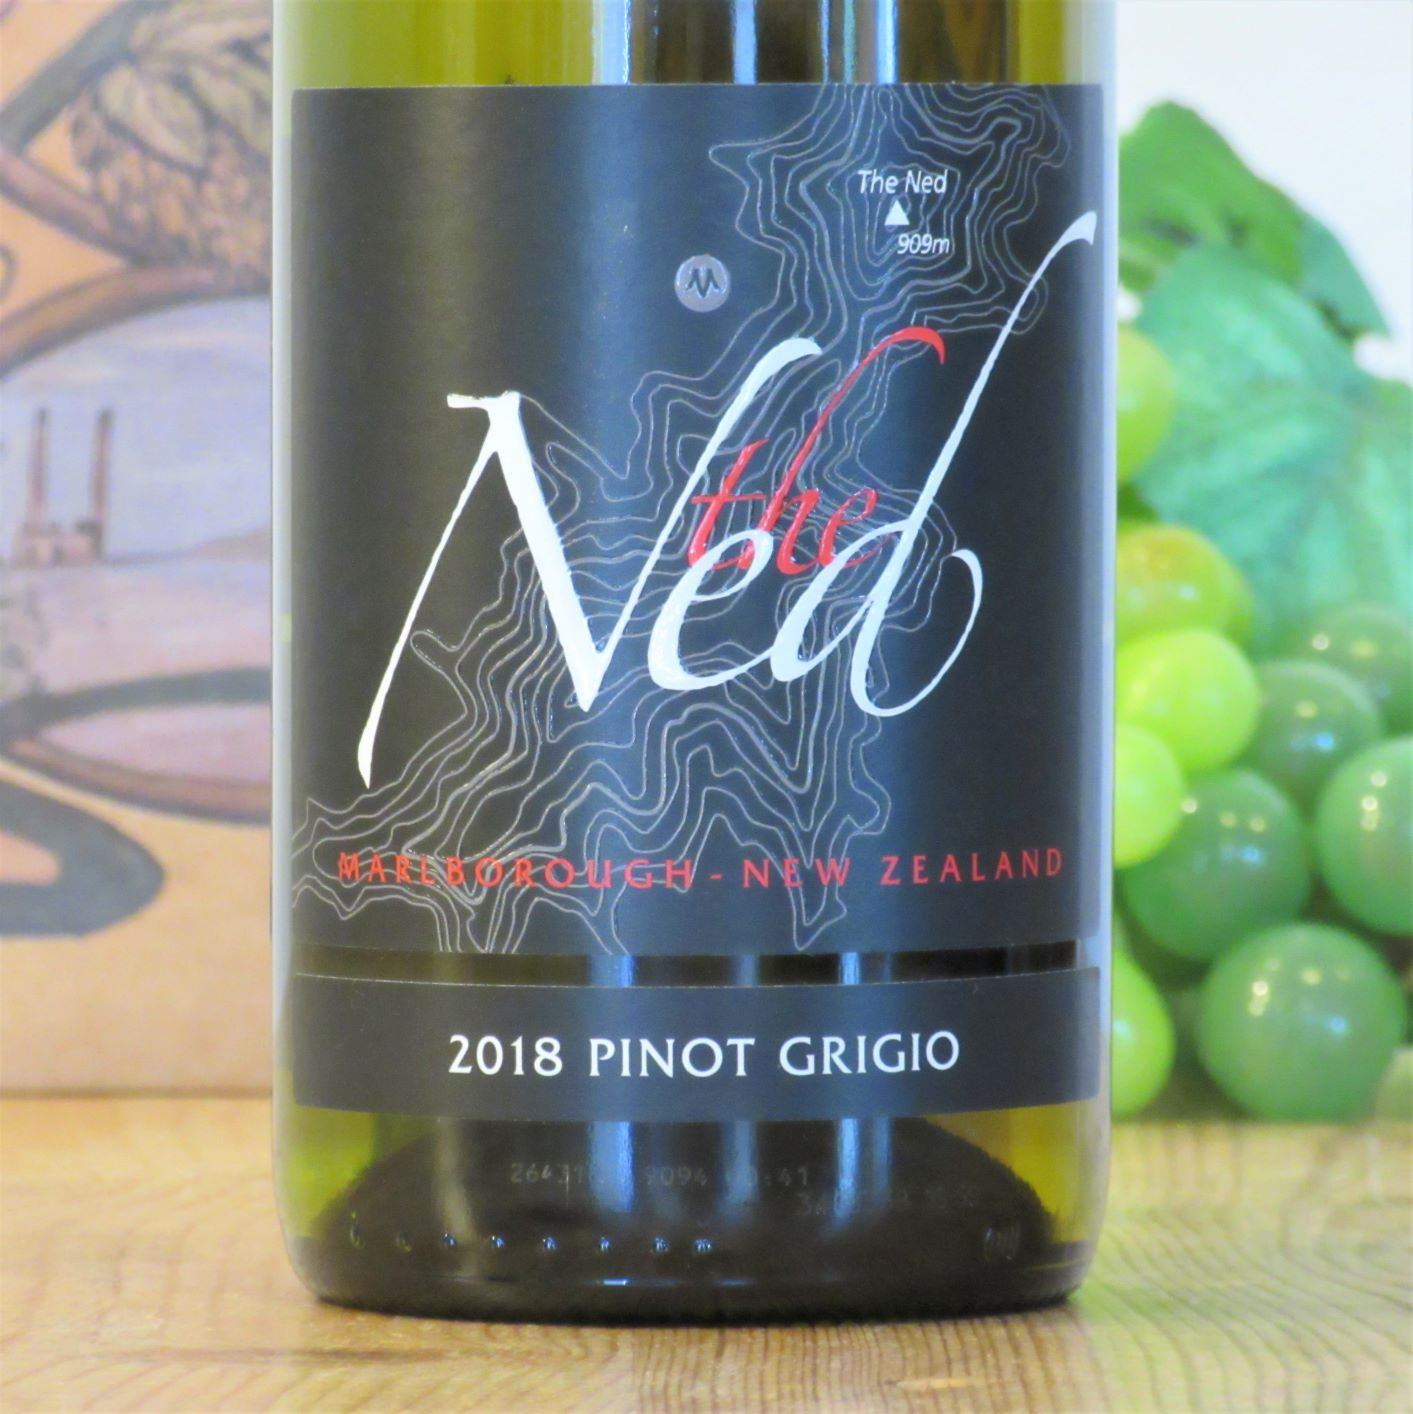 The Ned Pinot Grigio